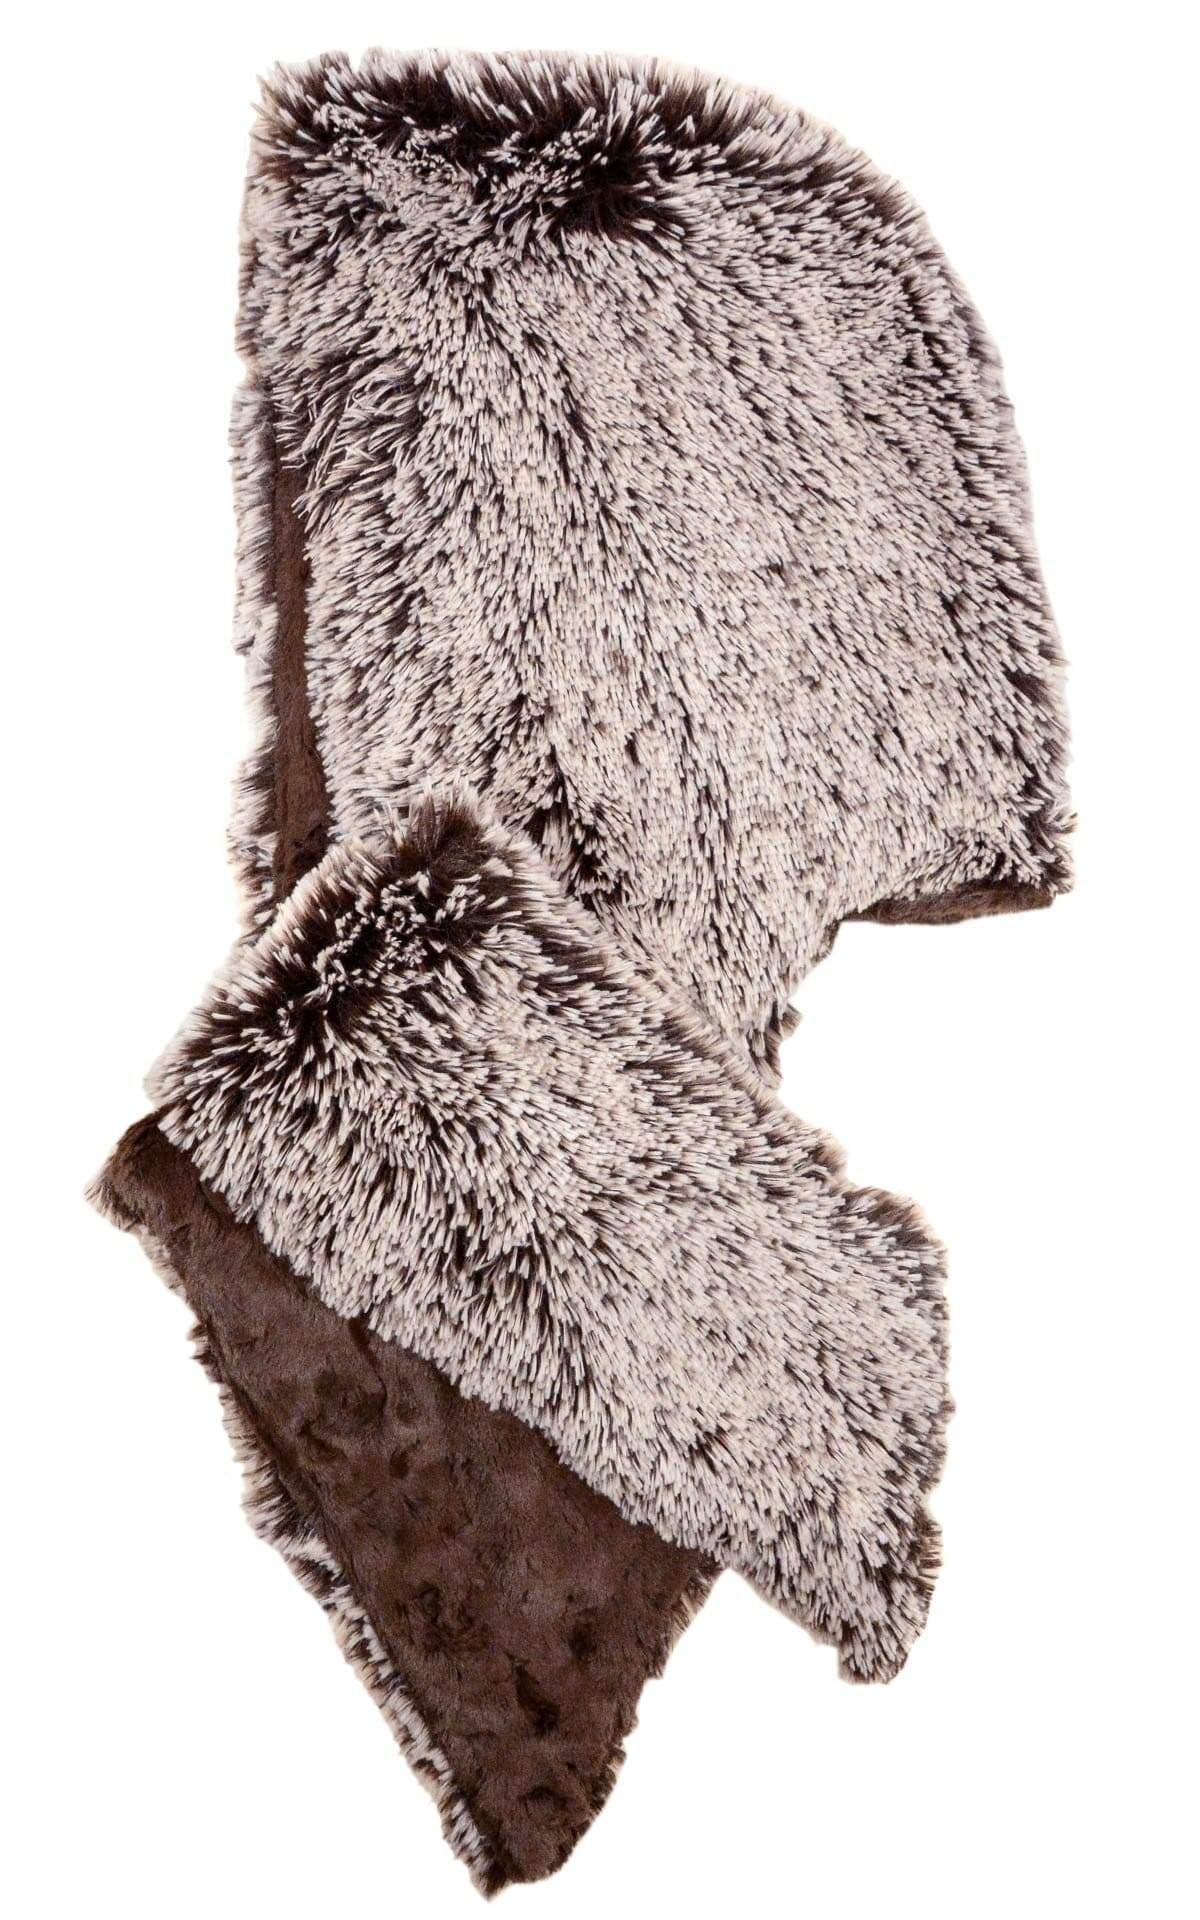 Pandemonium Millinery Hoody Scarf - Fox Faux Fur with Cuddly Fur Silver Tipped Fox Brown / Chocolate Scarves